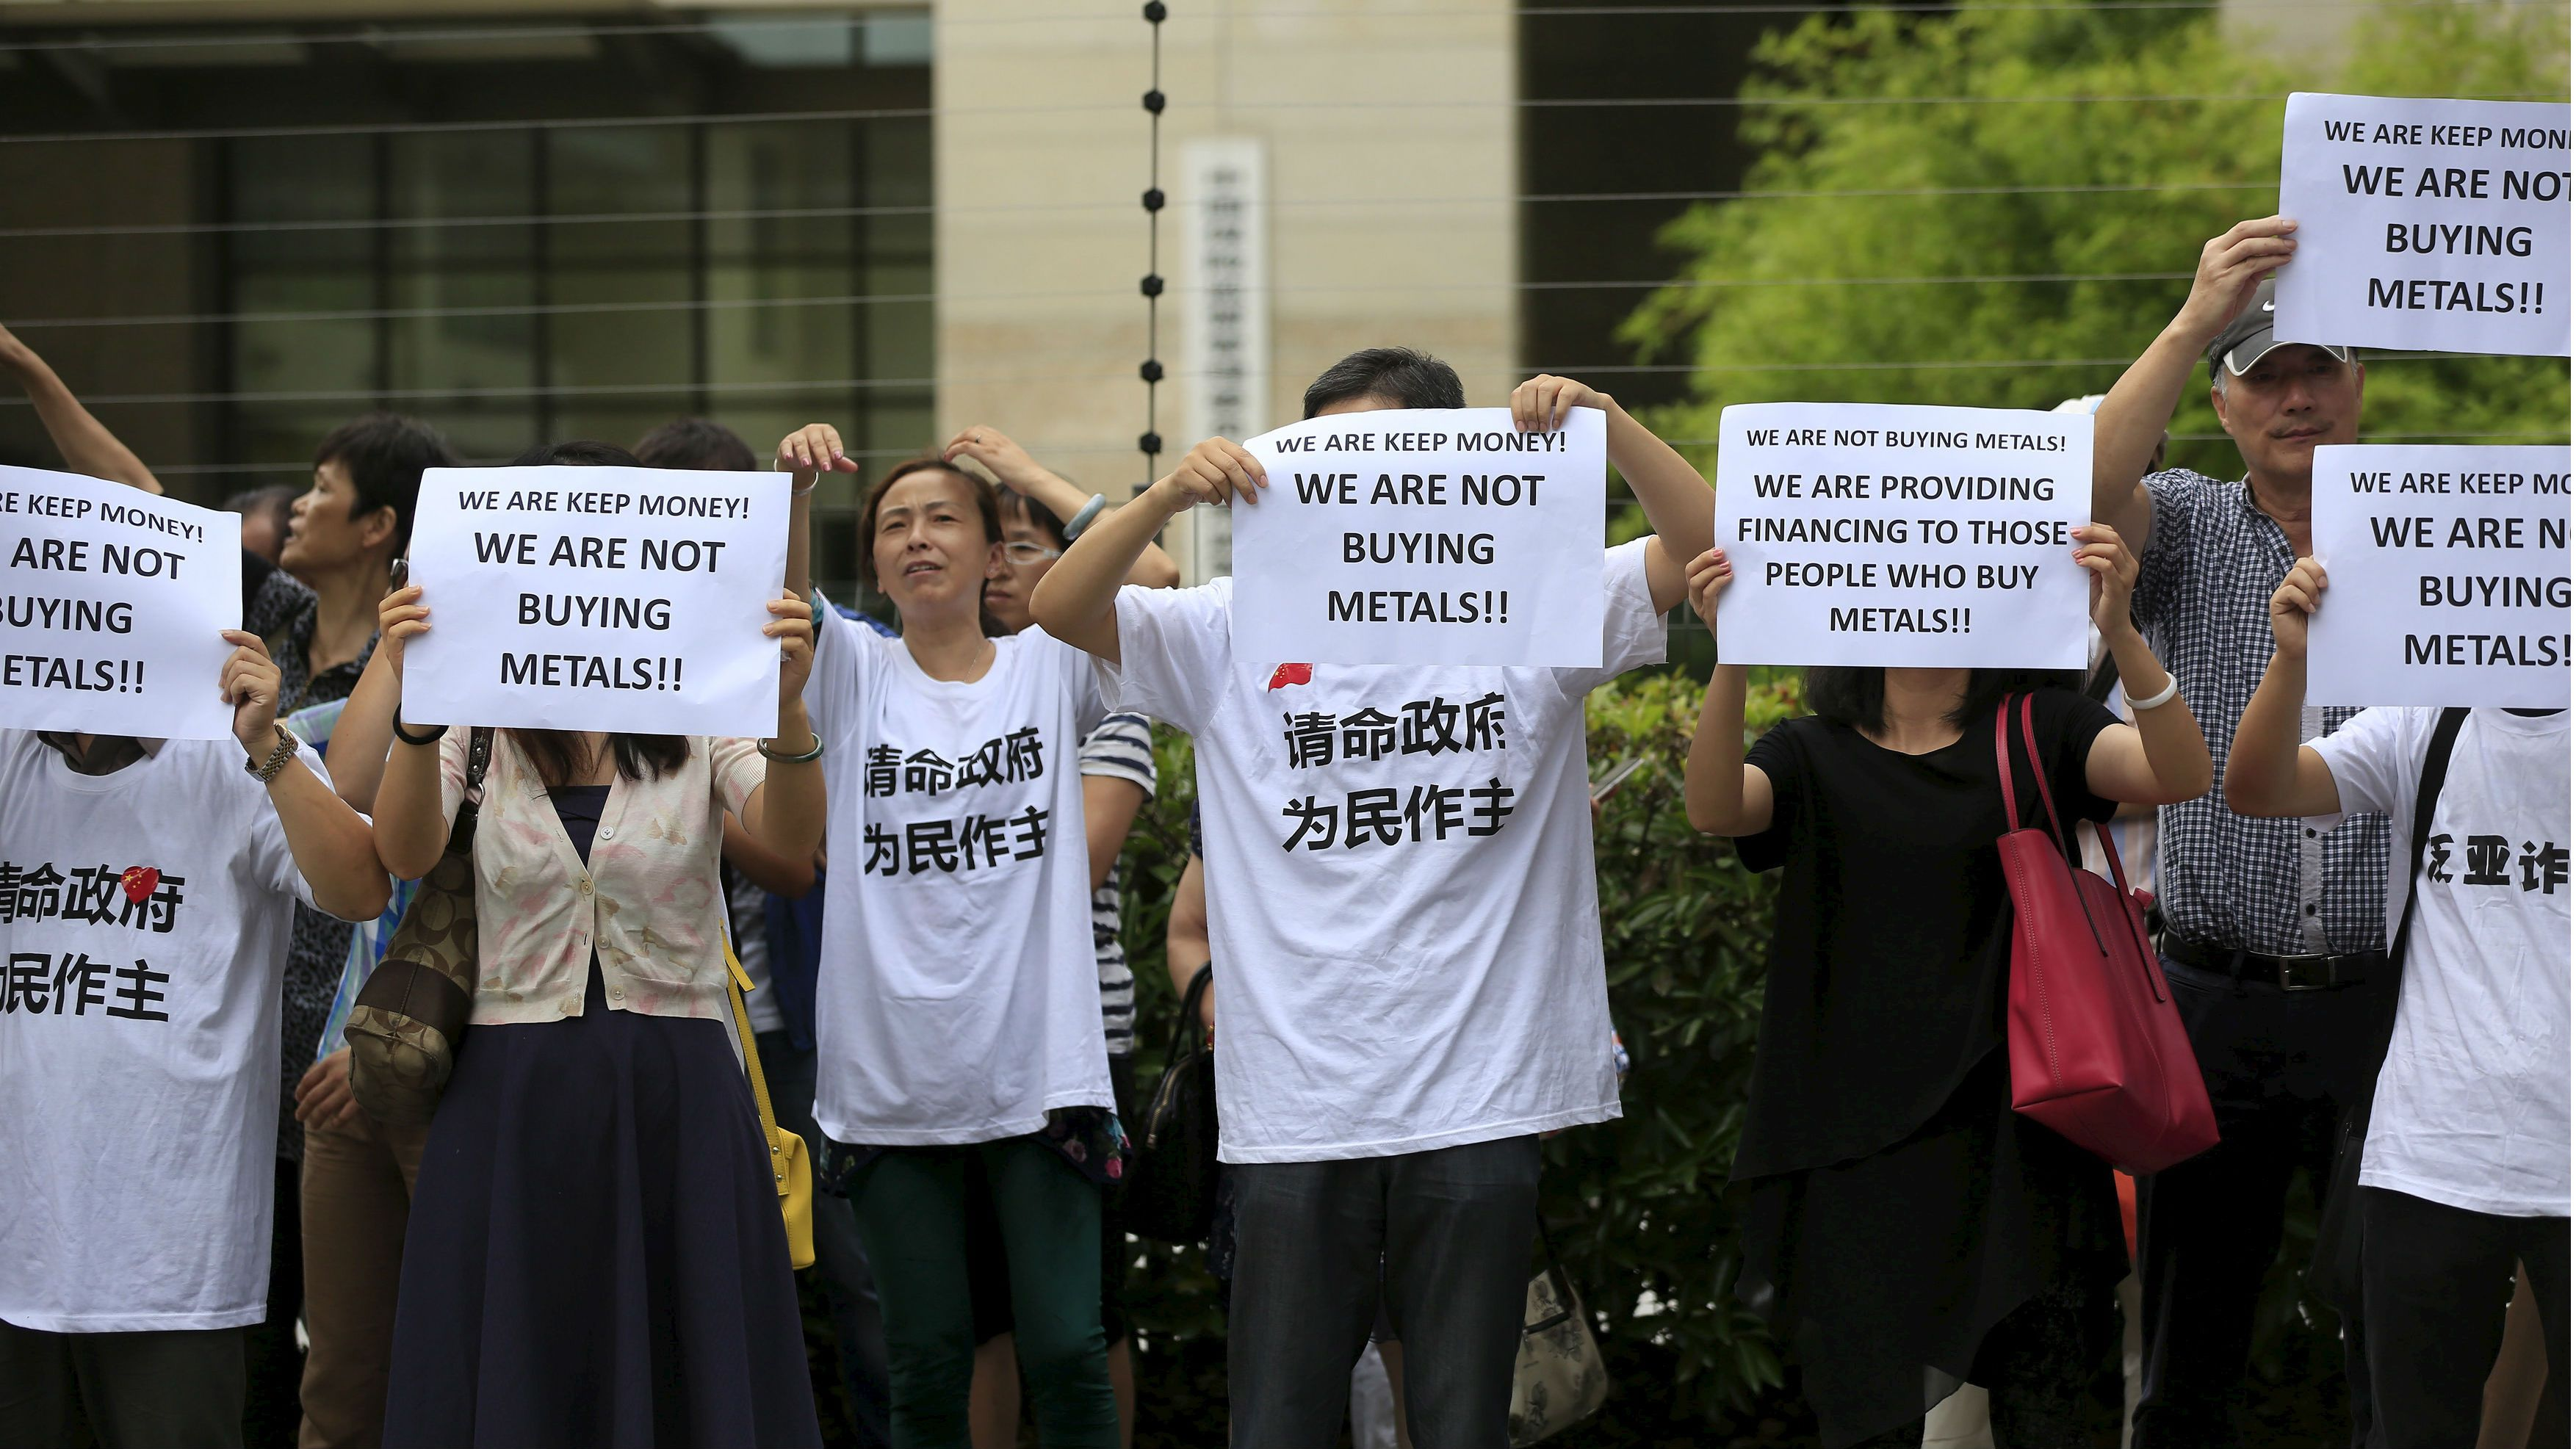 "Protesters holding papers gather outside the Shanghai Banking Regulatory Bureau to protest against the Fanya Metal Exchange, in Shanghai, China, September 25, 2015. Hundreds of investors gathered outside the headquarters of China's securities watchdog to protest against a metals exchange in a southwest province they accuse of defrauding them of billions of yuan. The Chinese characters on the shirts read, ""A plea to the government to stand judge for the people."" REUTERS/Aly Song"